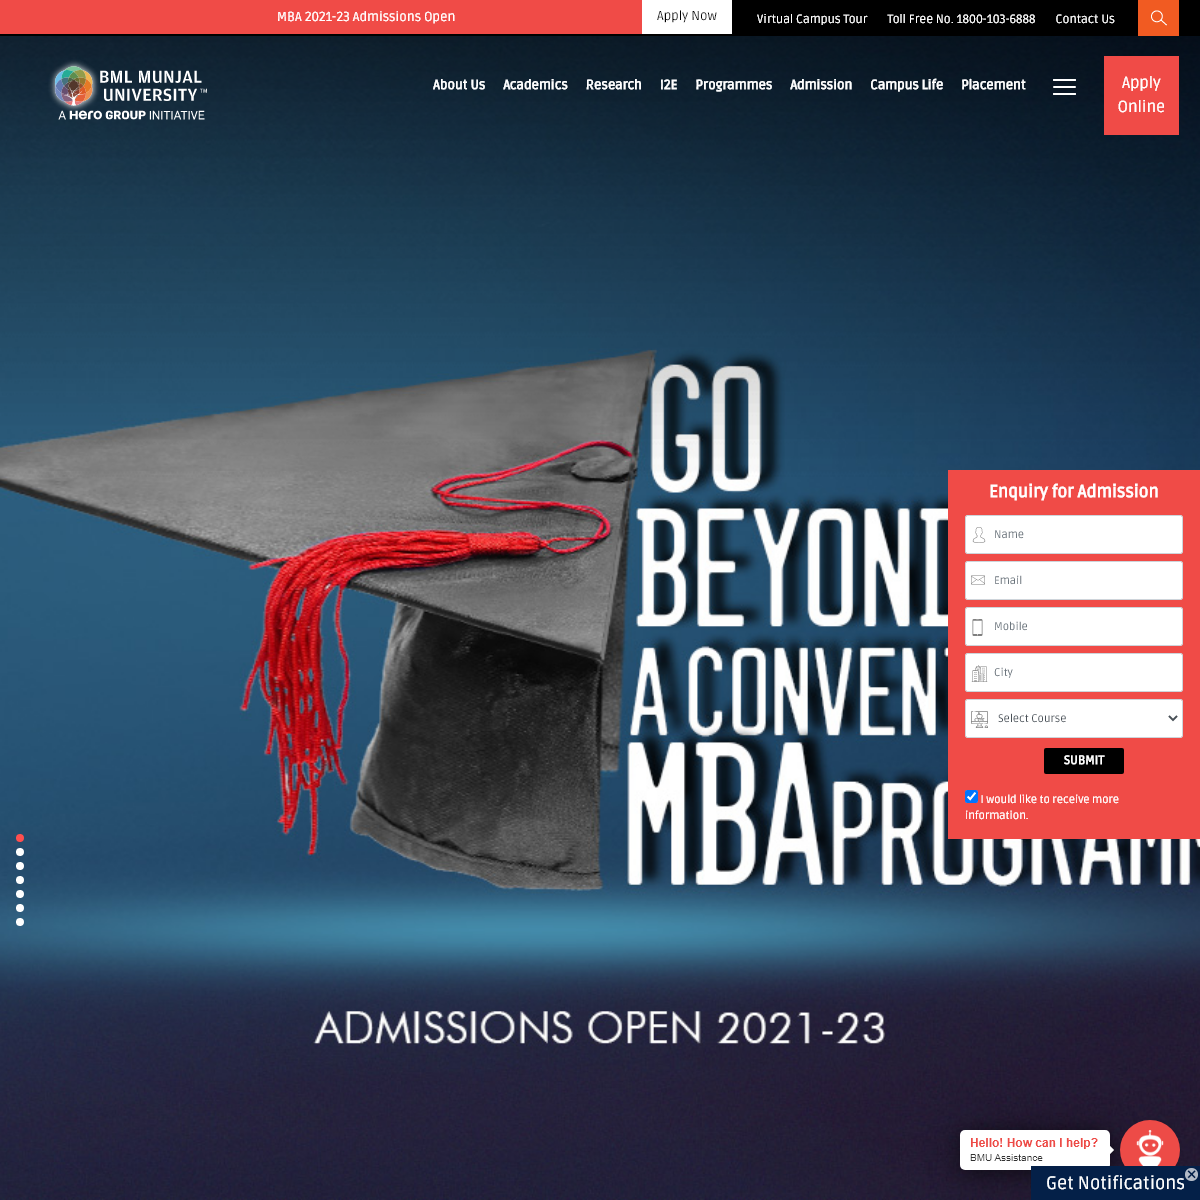 BML Munjal University - Engineering Courses - Management Courses - Law Courses - Economics & Commerce Courses